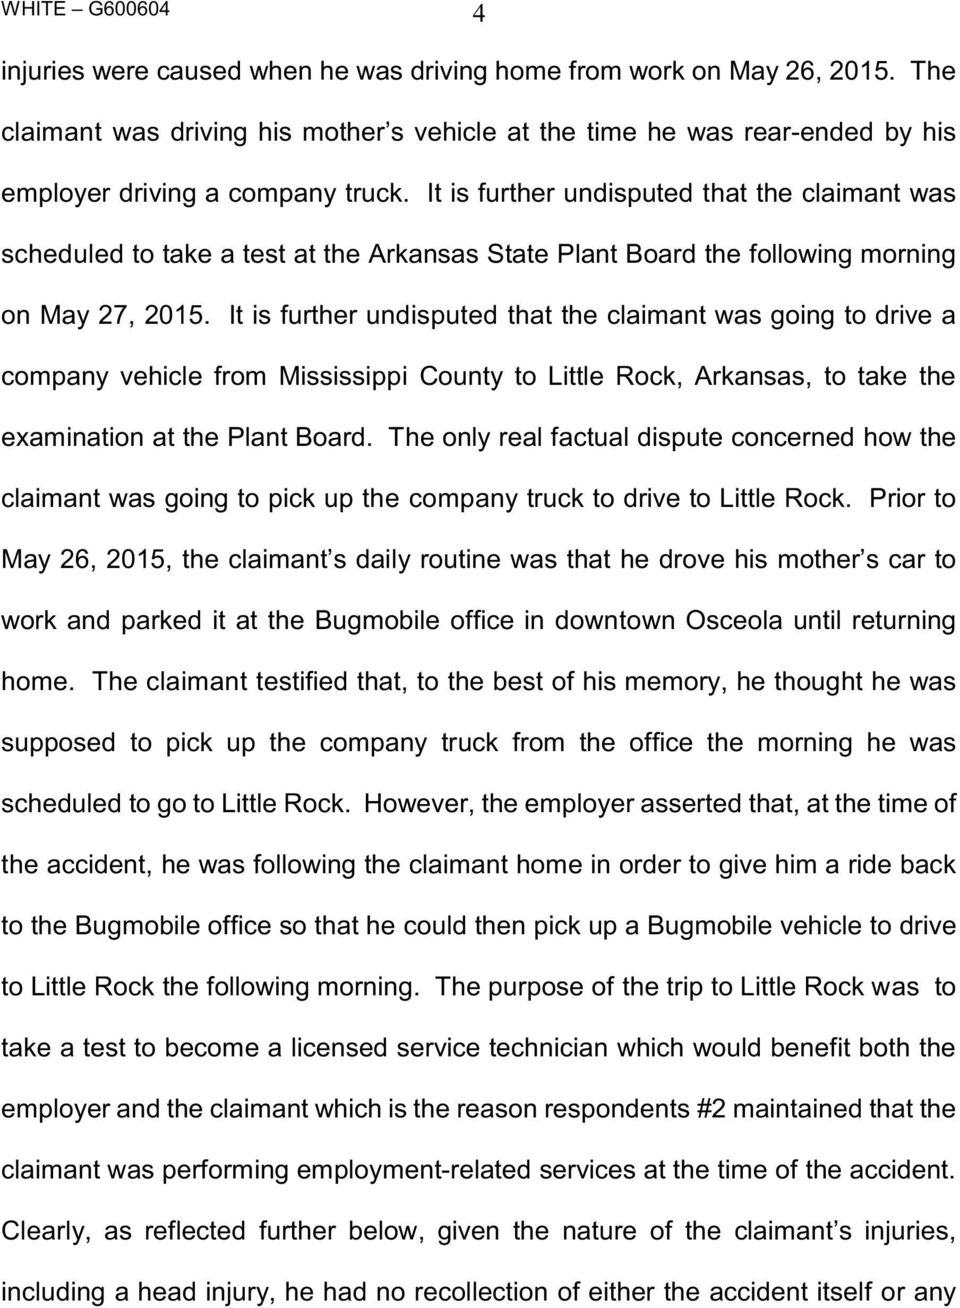 It is further undisputed that the claimant was going to drive a company vehicle from Mississippi County to Little Rock, rkansas, to take the examination at the Plant Board.